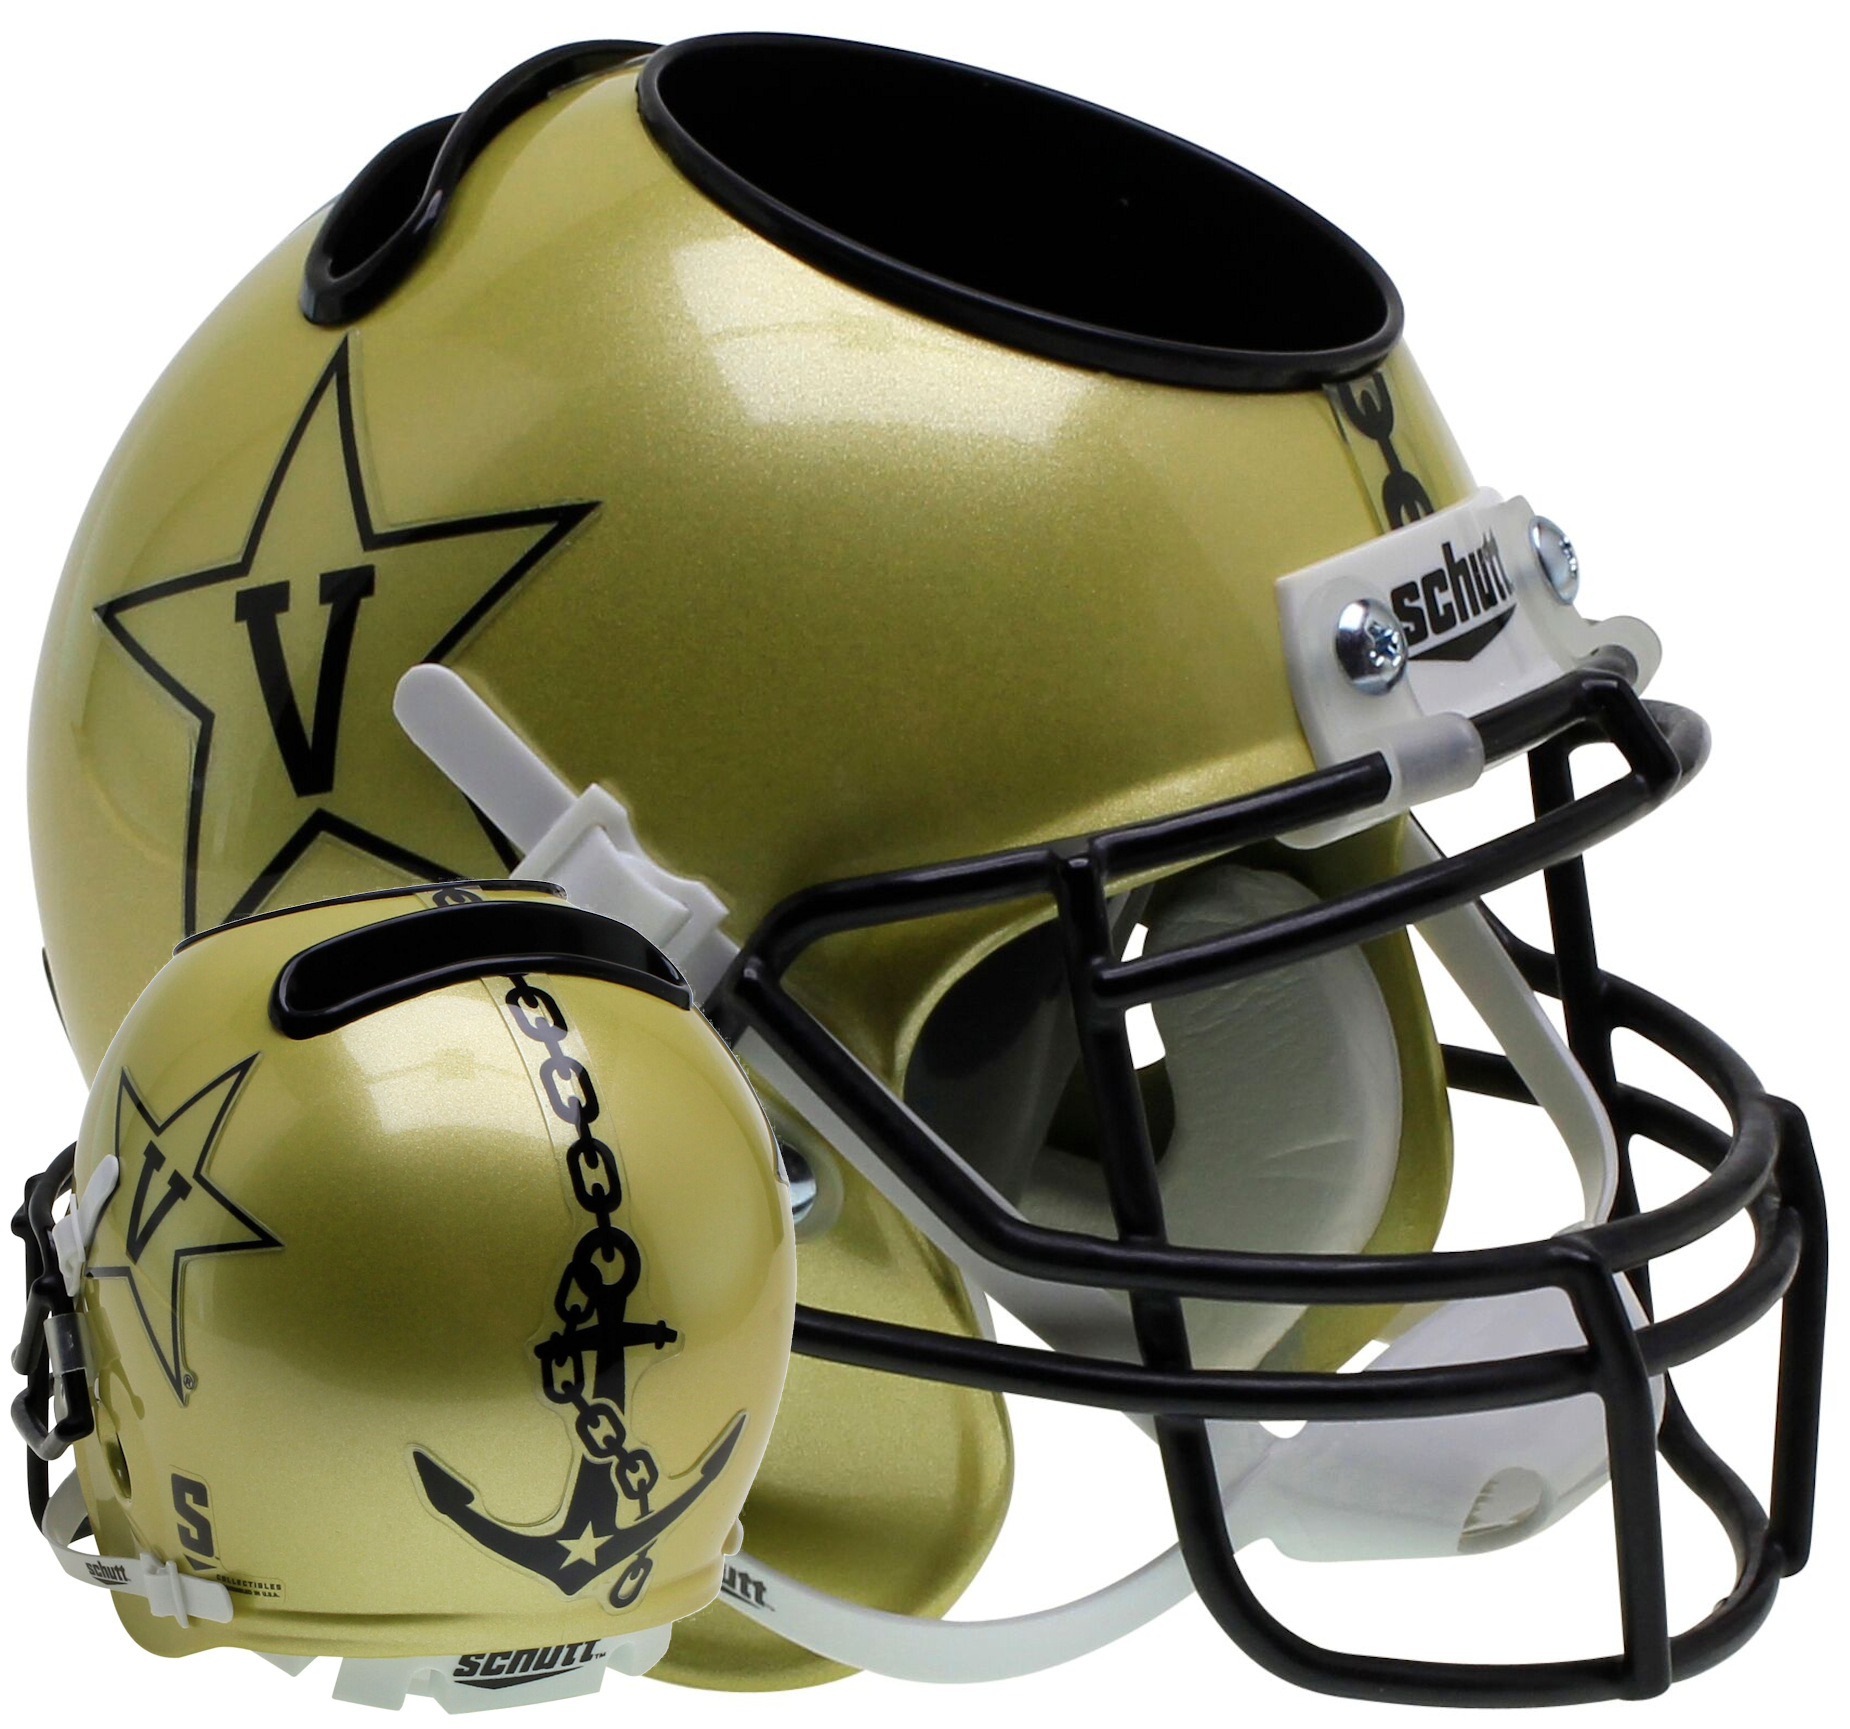 Vanderbilt Commodores Miniature Football Helmet Desk Caddy <B>Gold</B>